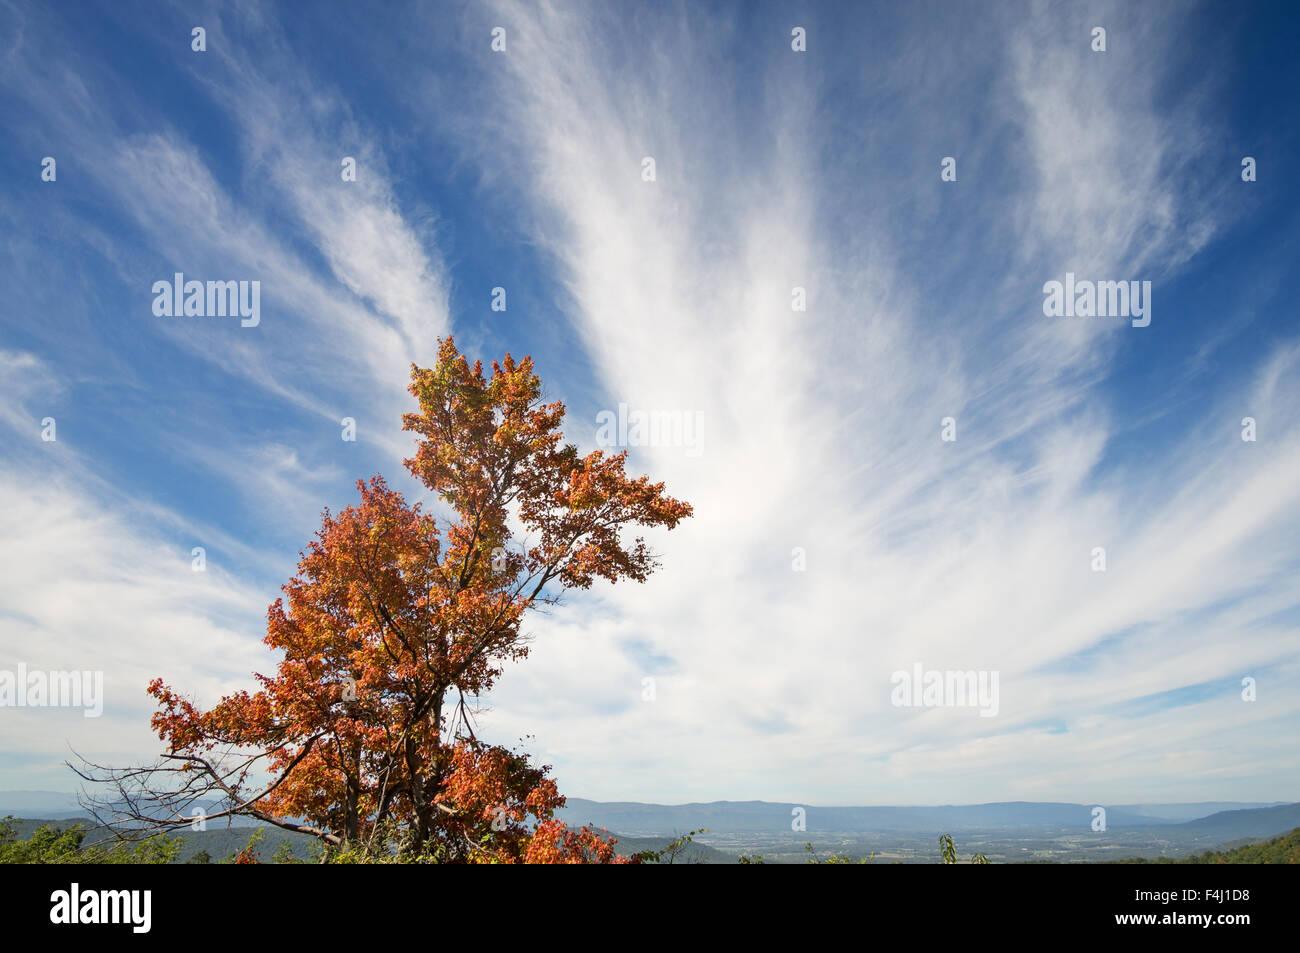 Tree with autumn foliage and blue sky with white clouds Skyline Drive, Shenandoah National Park, Virginia, USA - Stock Image